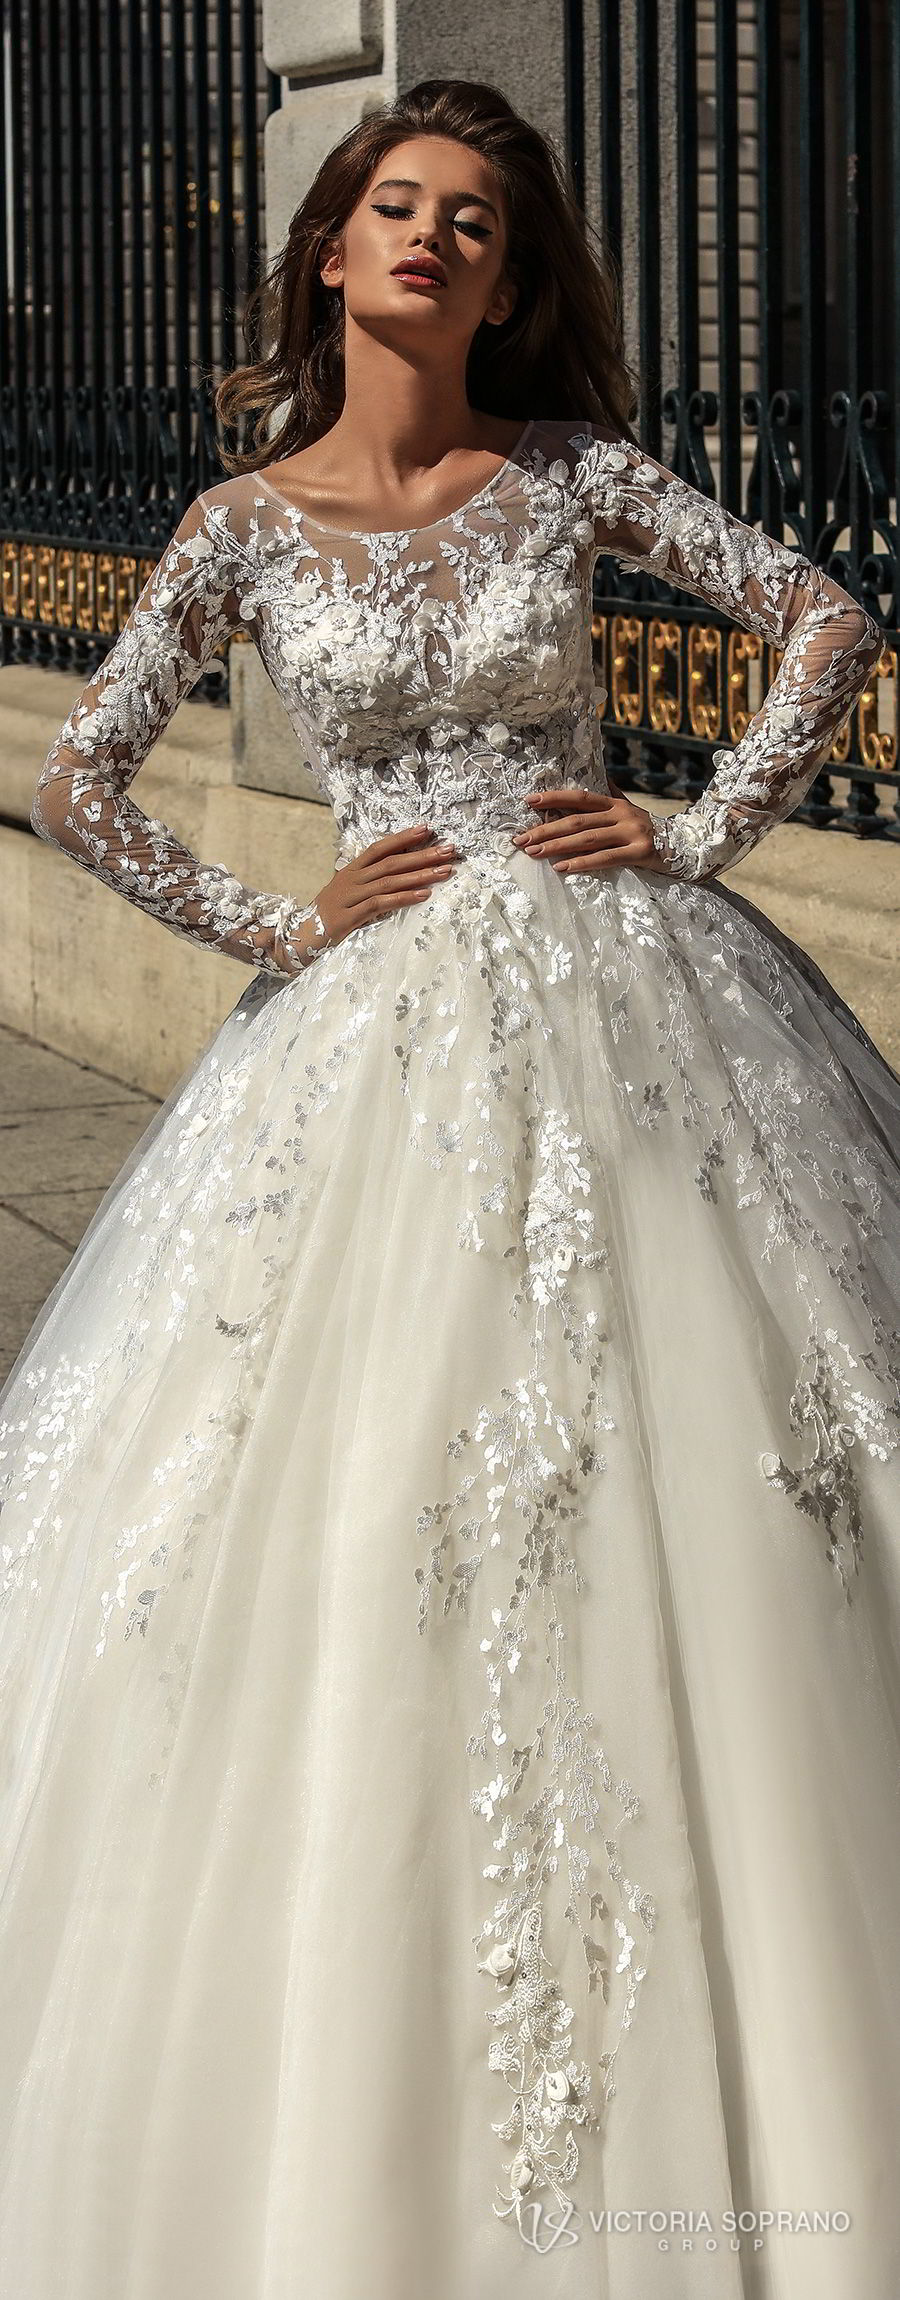 victoria soprano 2018 bridal long sleeves illusion jewel sweetheart neckline heavily embellished bodice princess ball gown a line wedding dress sheer lace back chapel train (felicity) lv